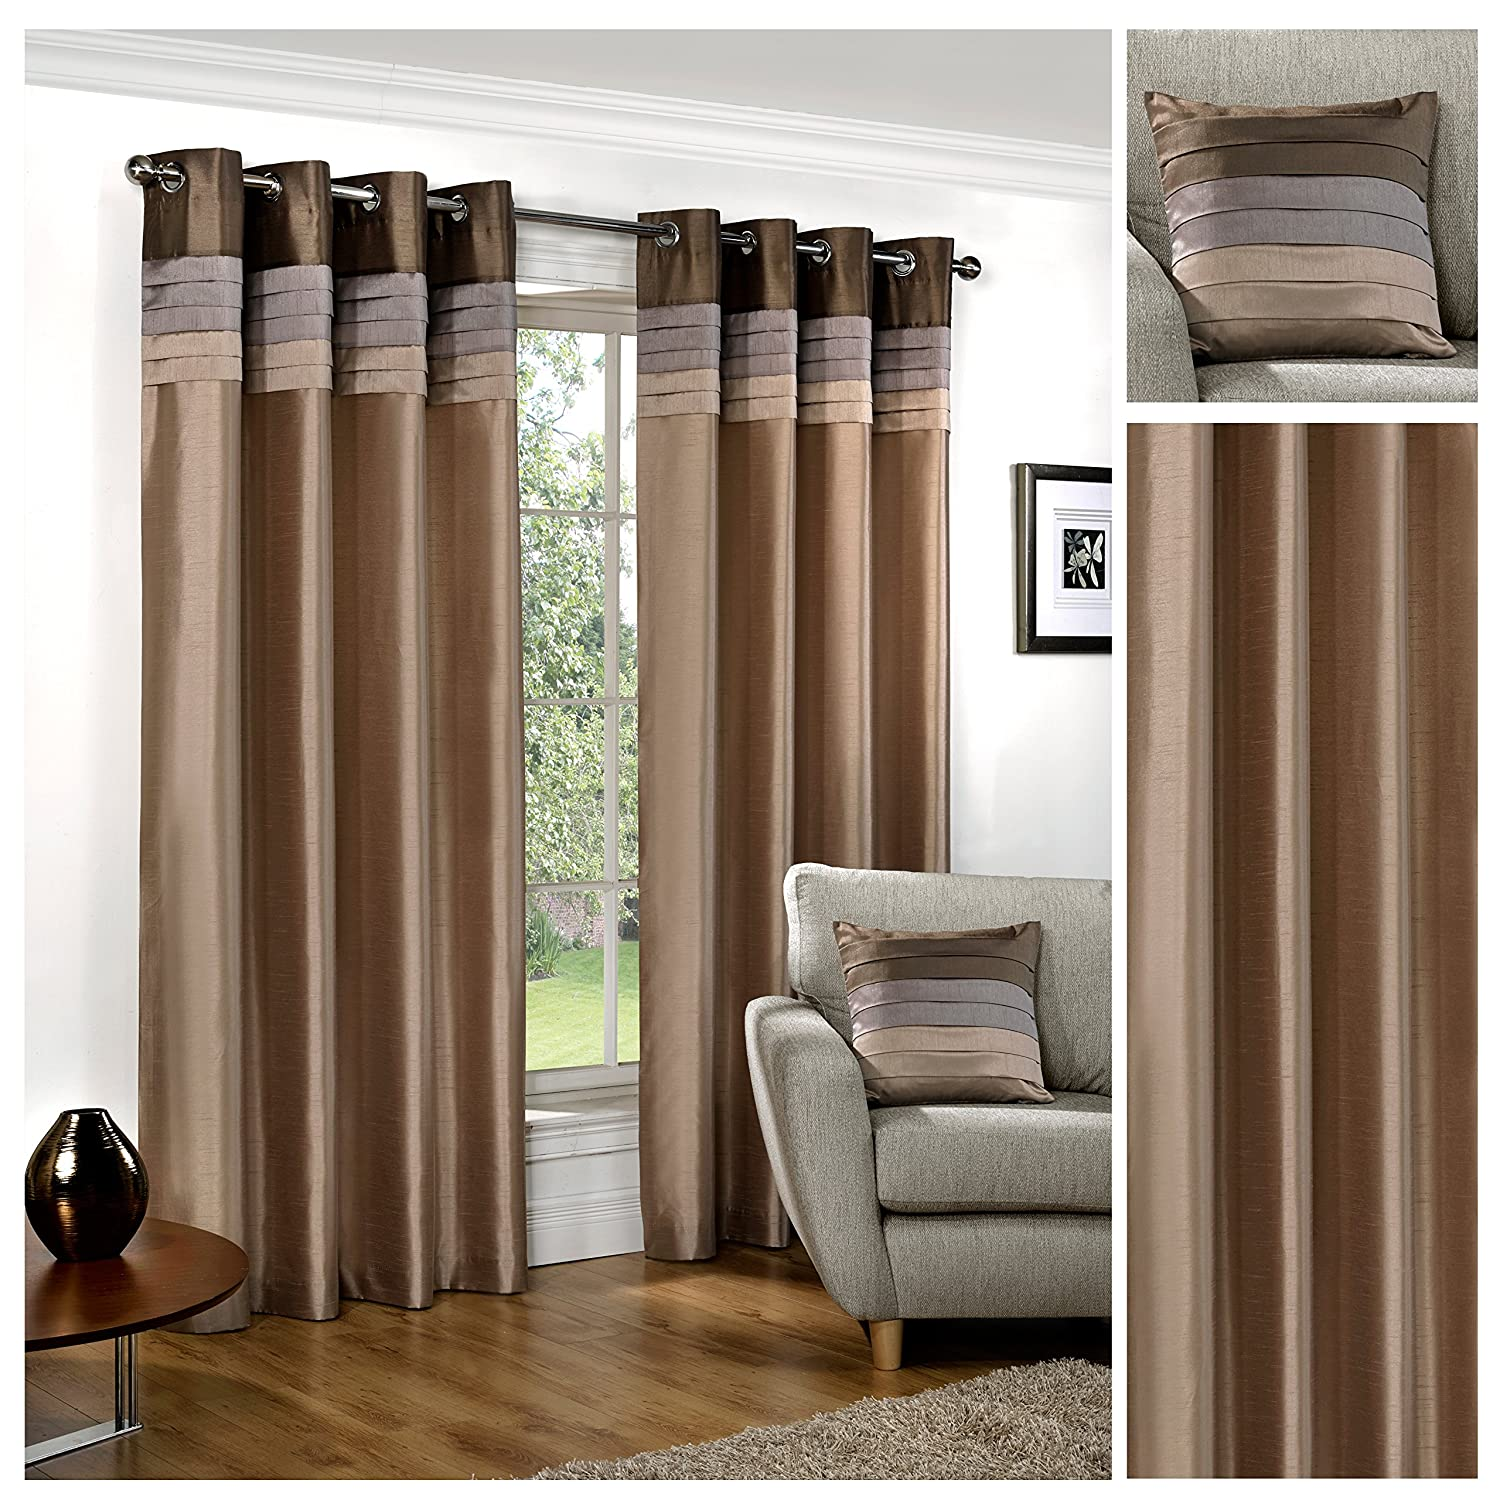 curtain backs made top ready burgundy ring blackout thermal curtains tie with matching product wine